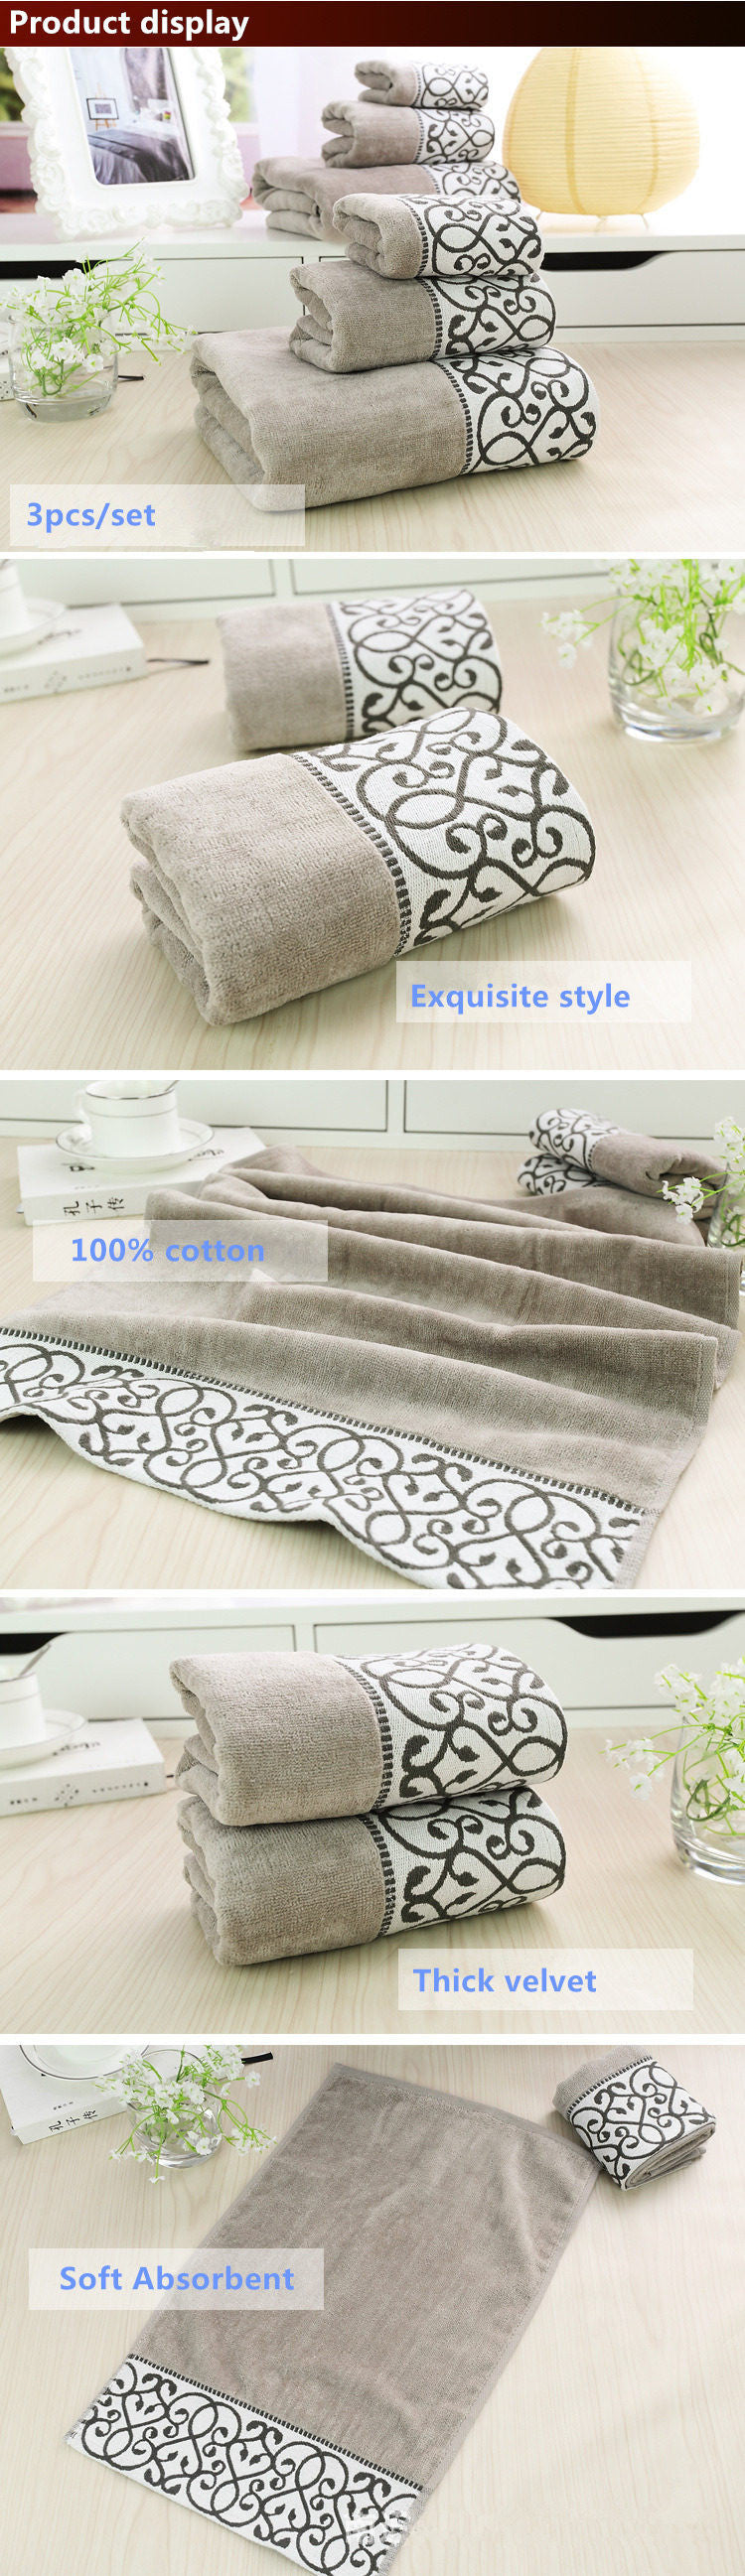 Linens and Towels – Simply Home Life